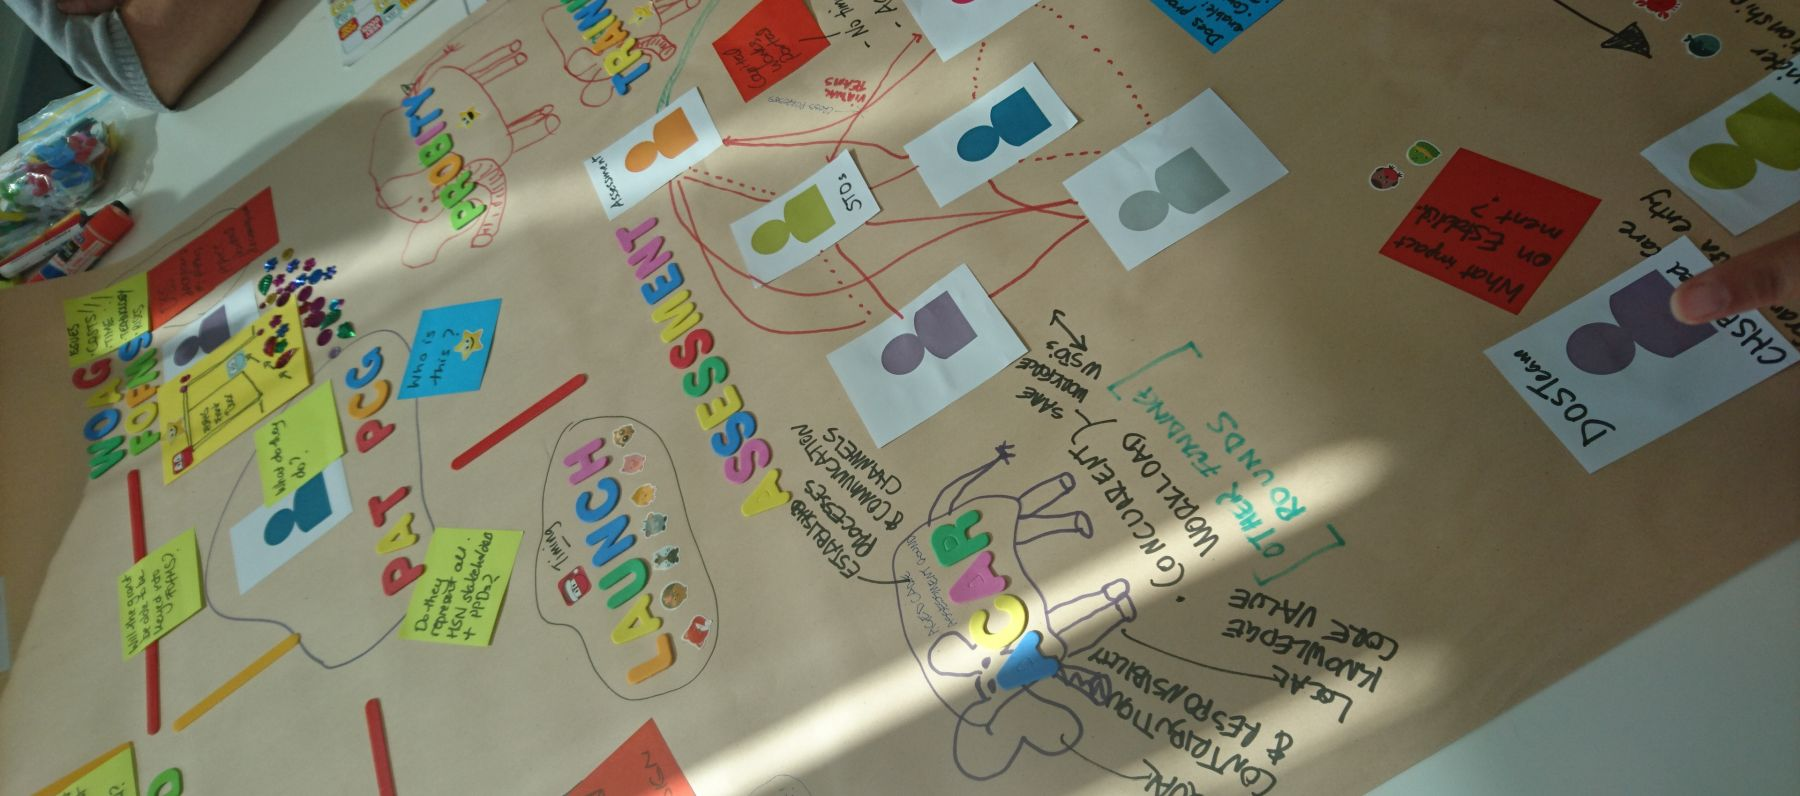 Embedding a co-design capability for innovation in a government department